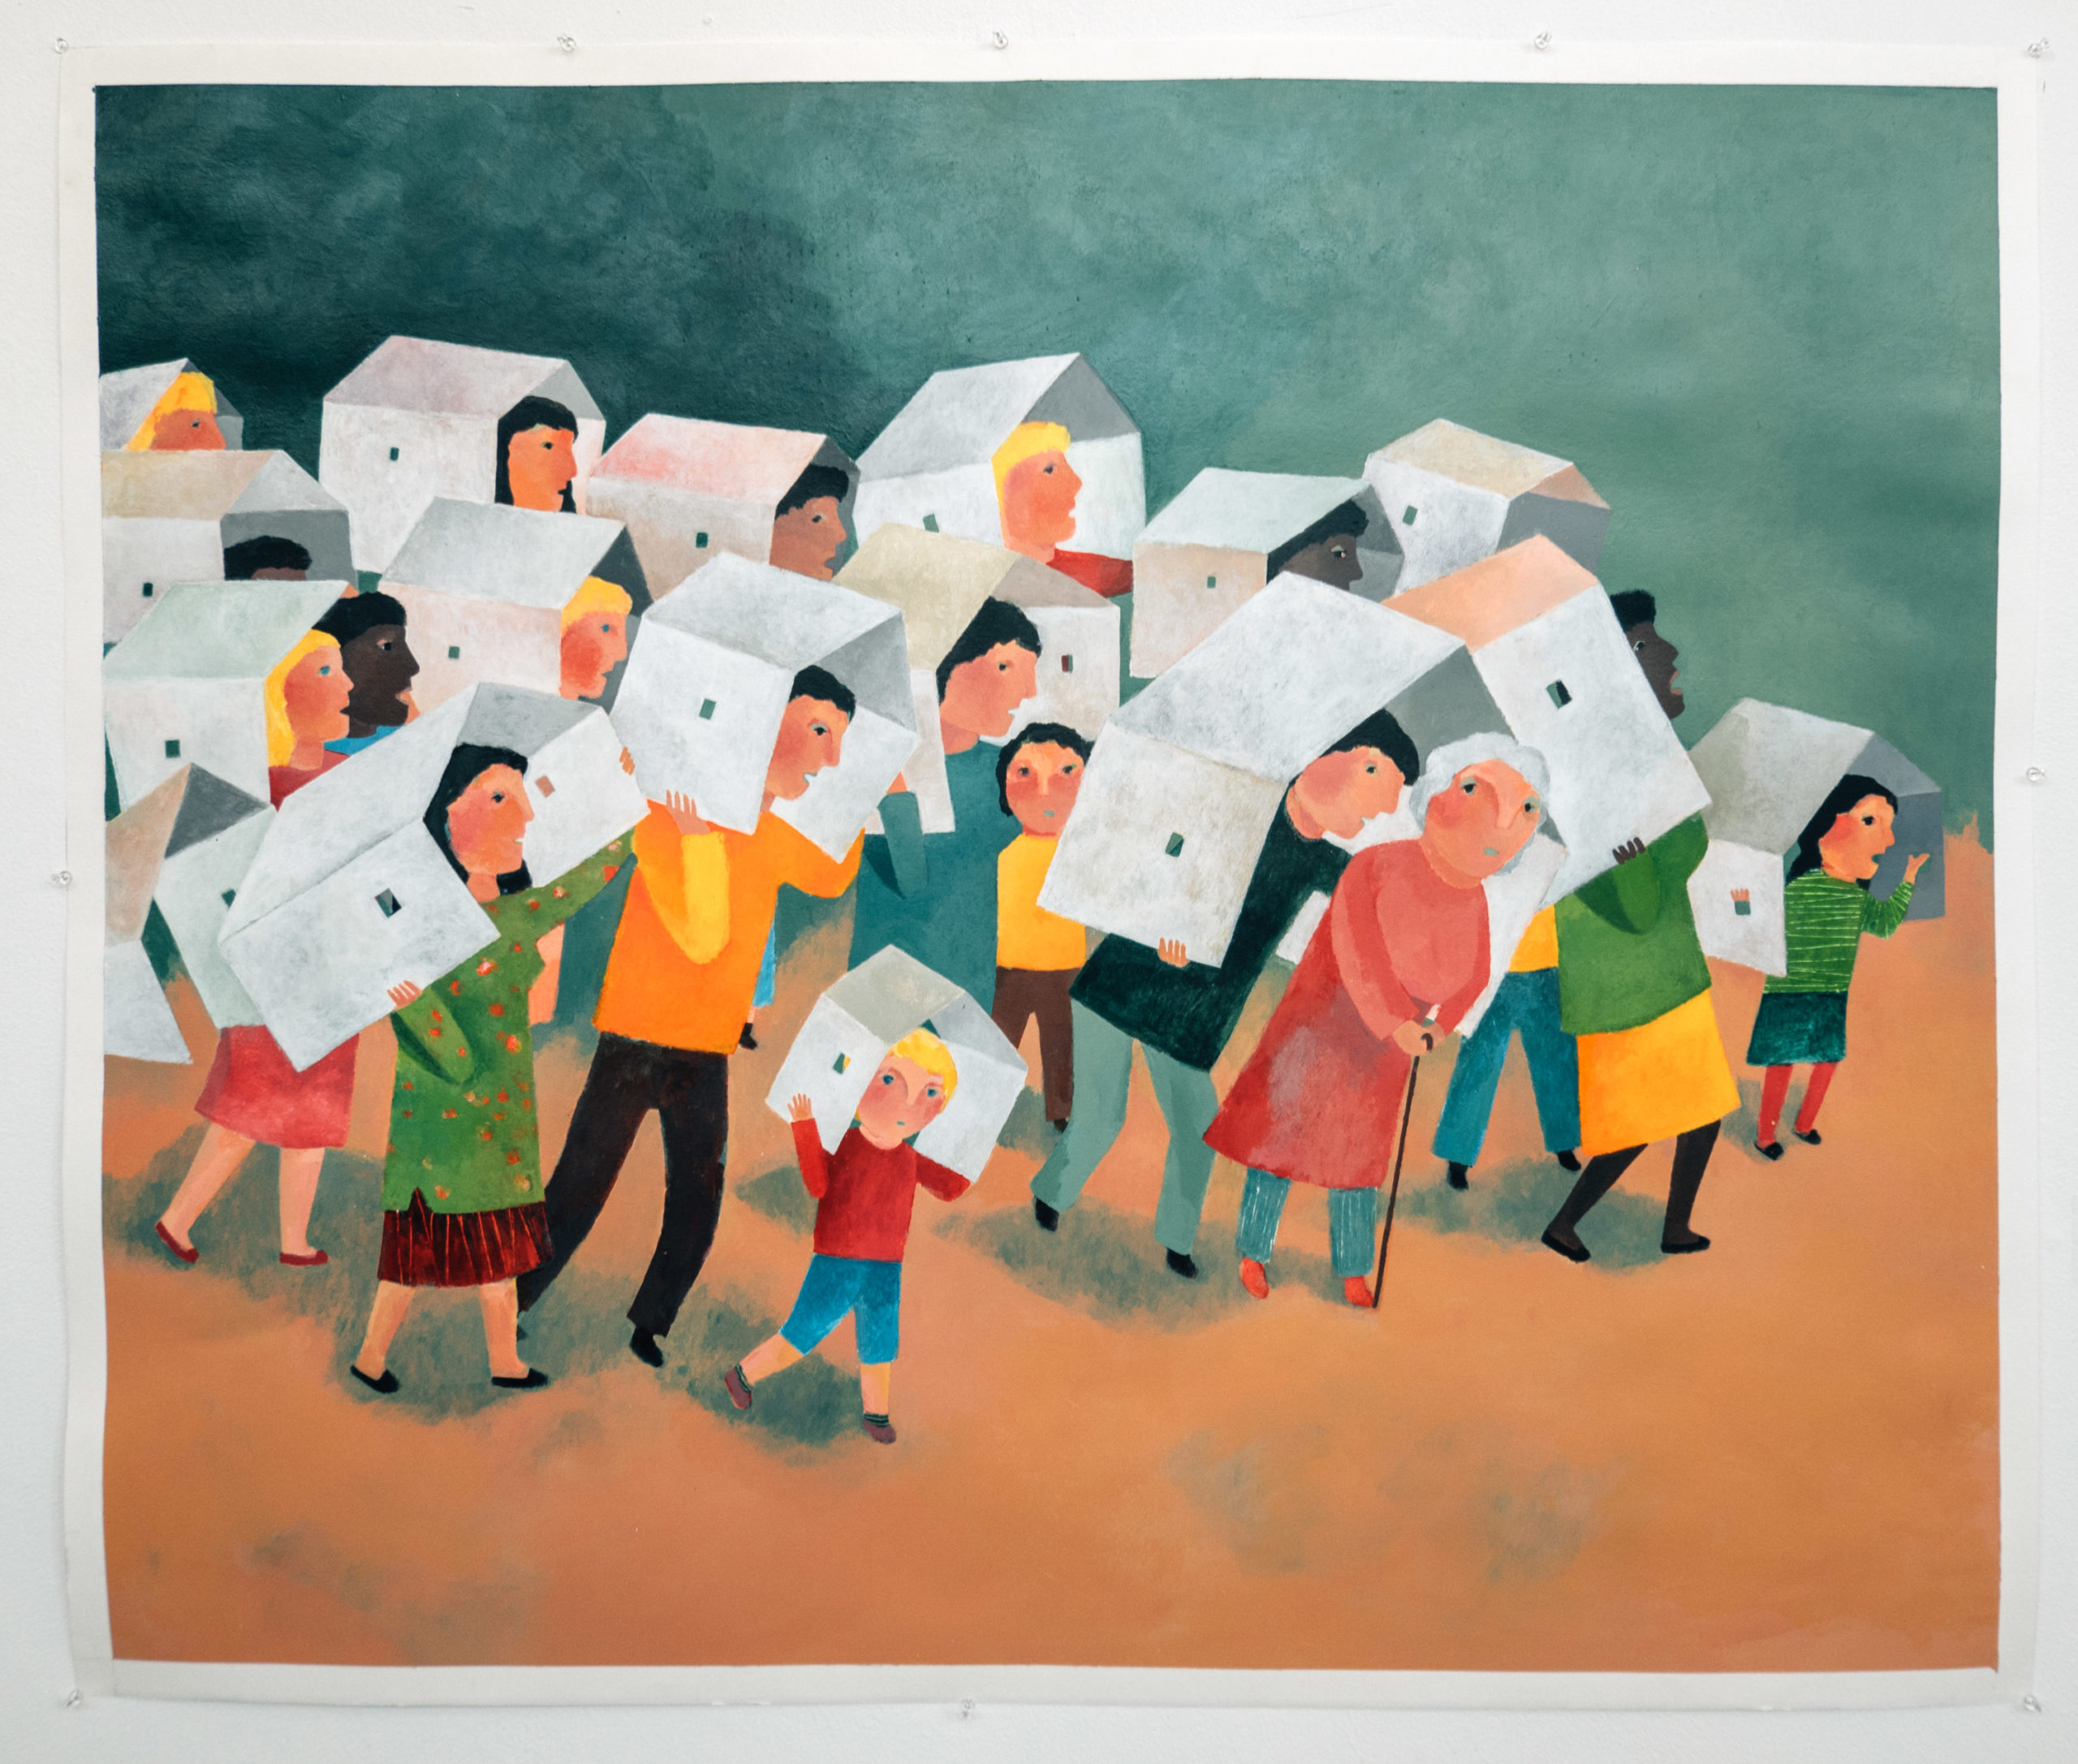 A painting of colorful people holding shapes that resemble houses over their head